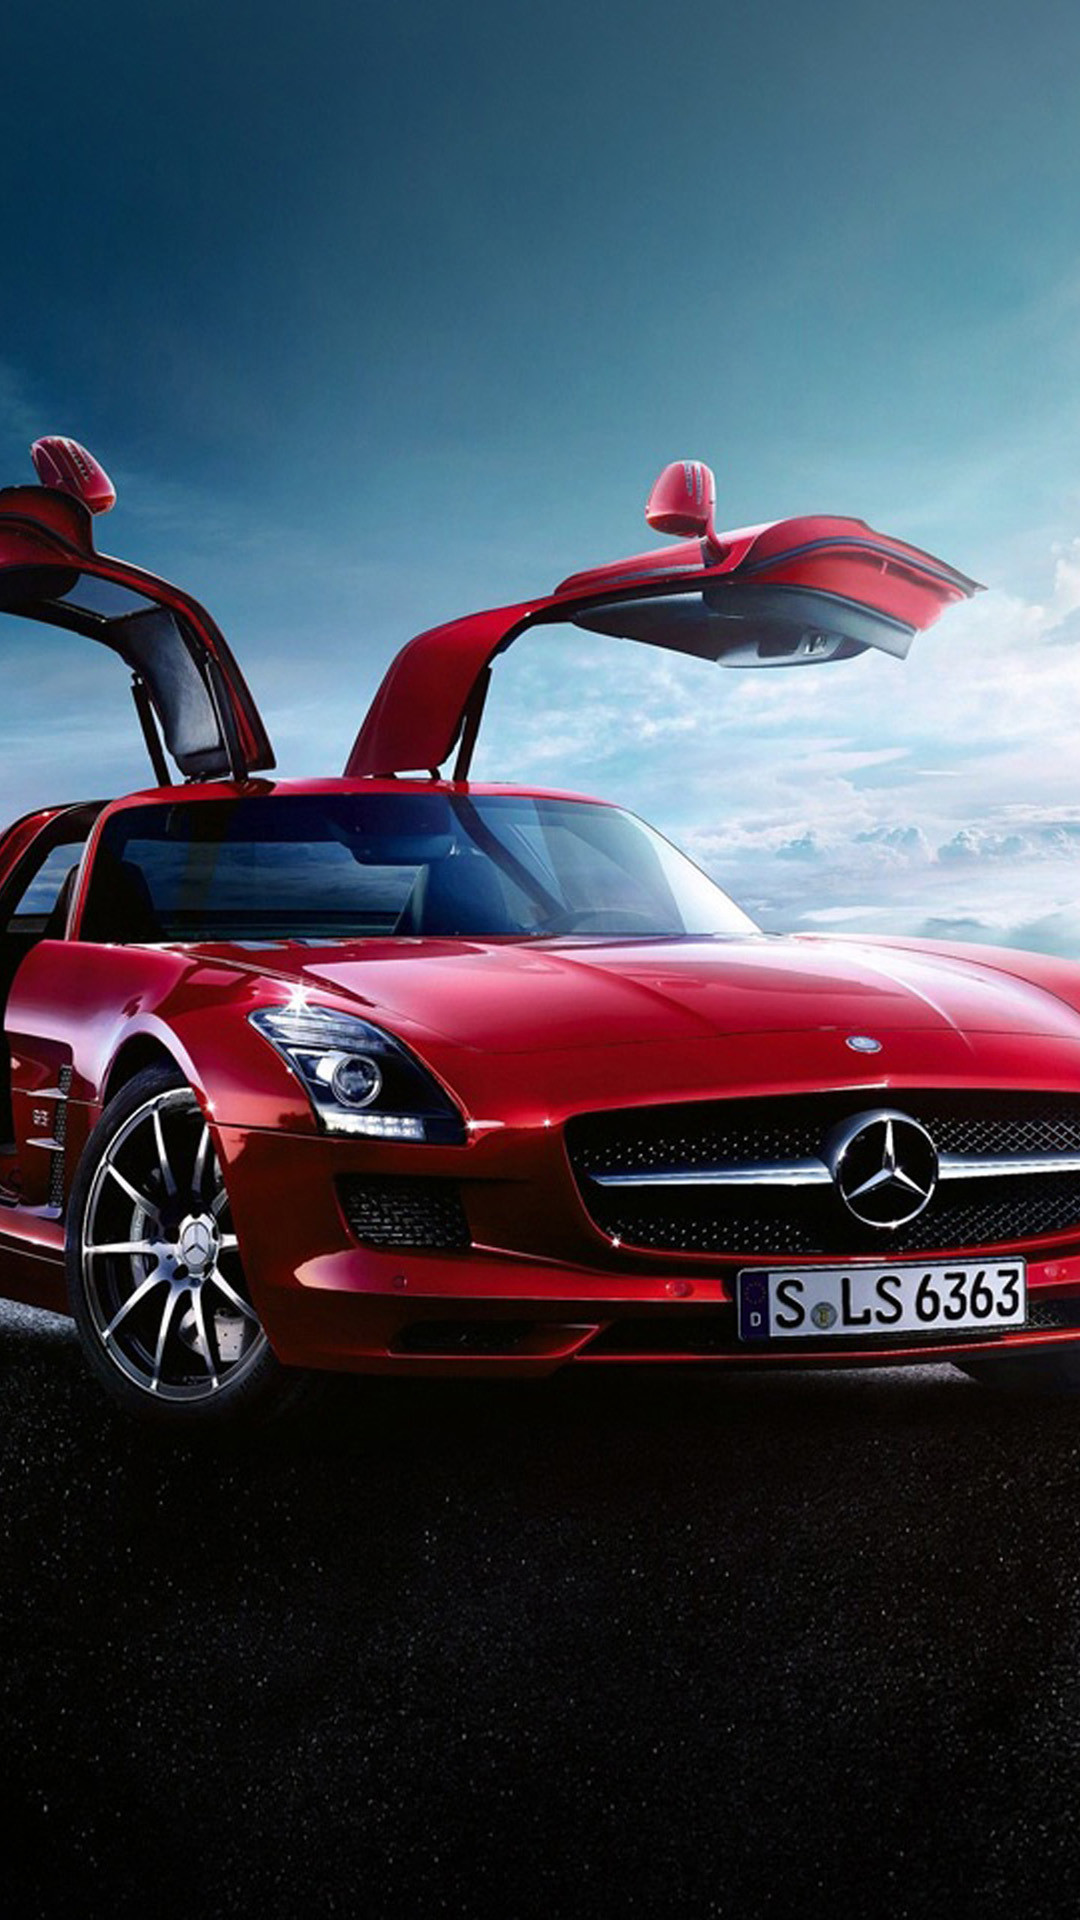 1080x1920 Mercedes-Benz SLS AMG Gullwing Red HD Wallpaper iPhone 6 plus